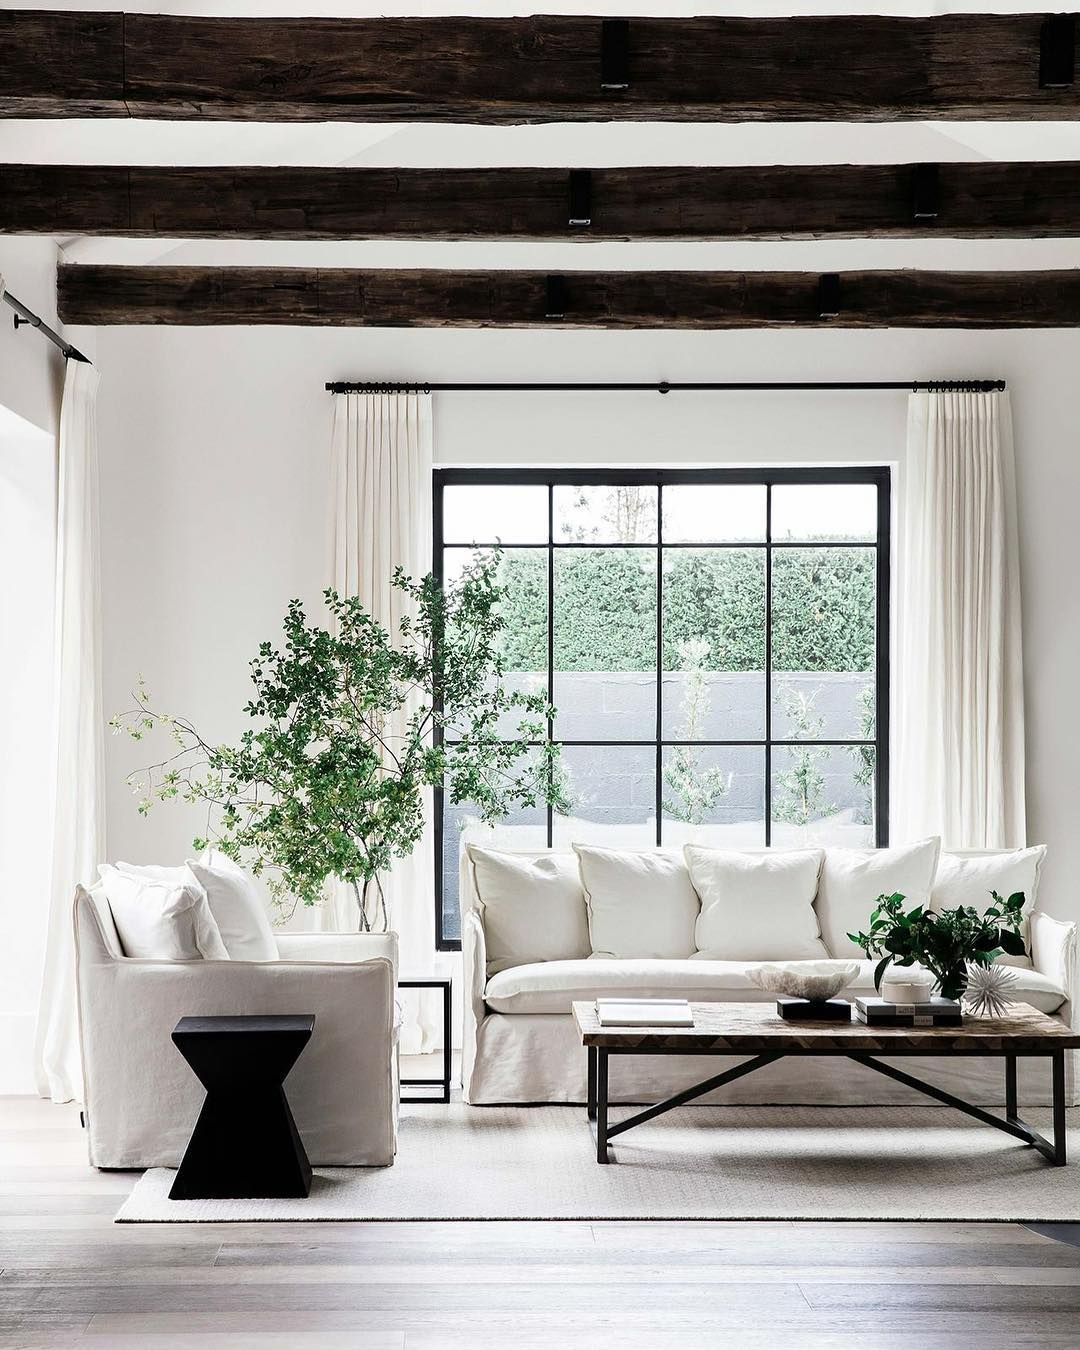 All white wood and greenery a